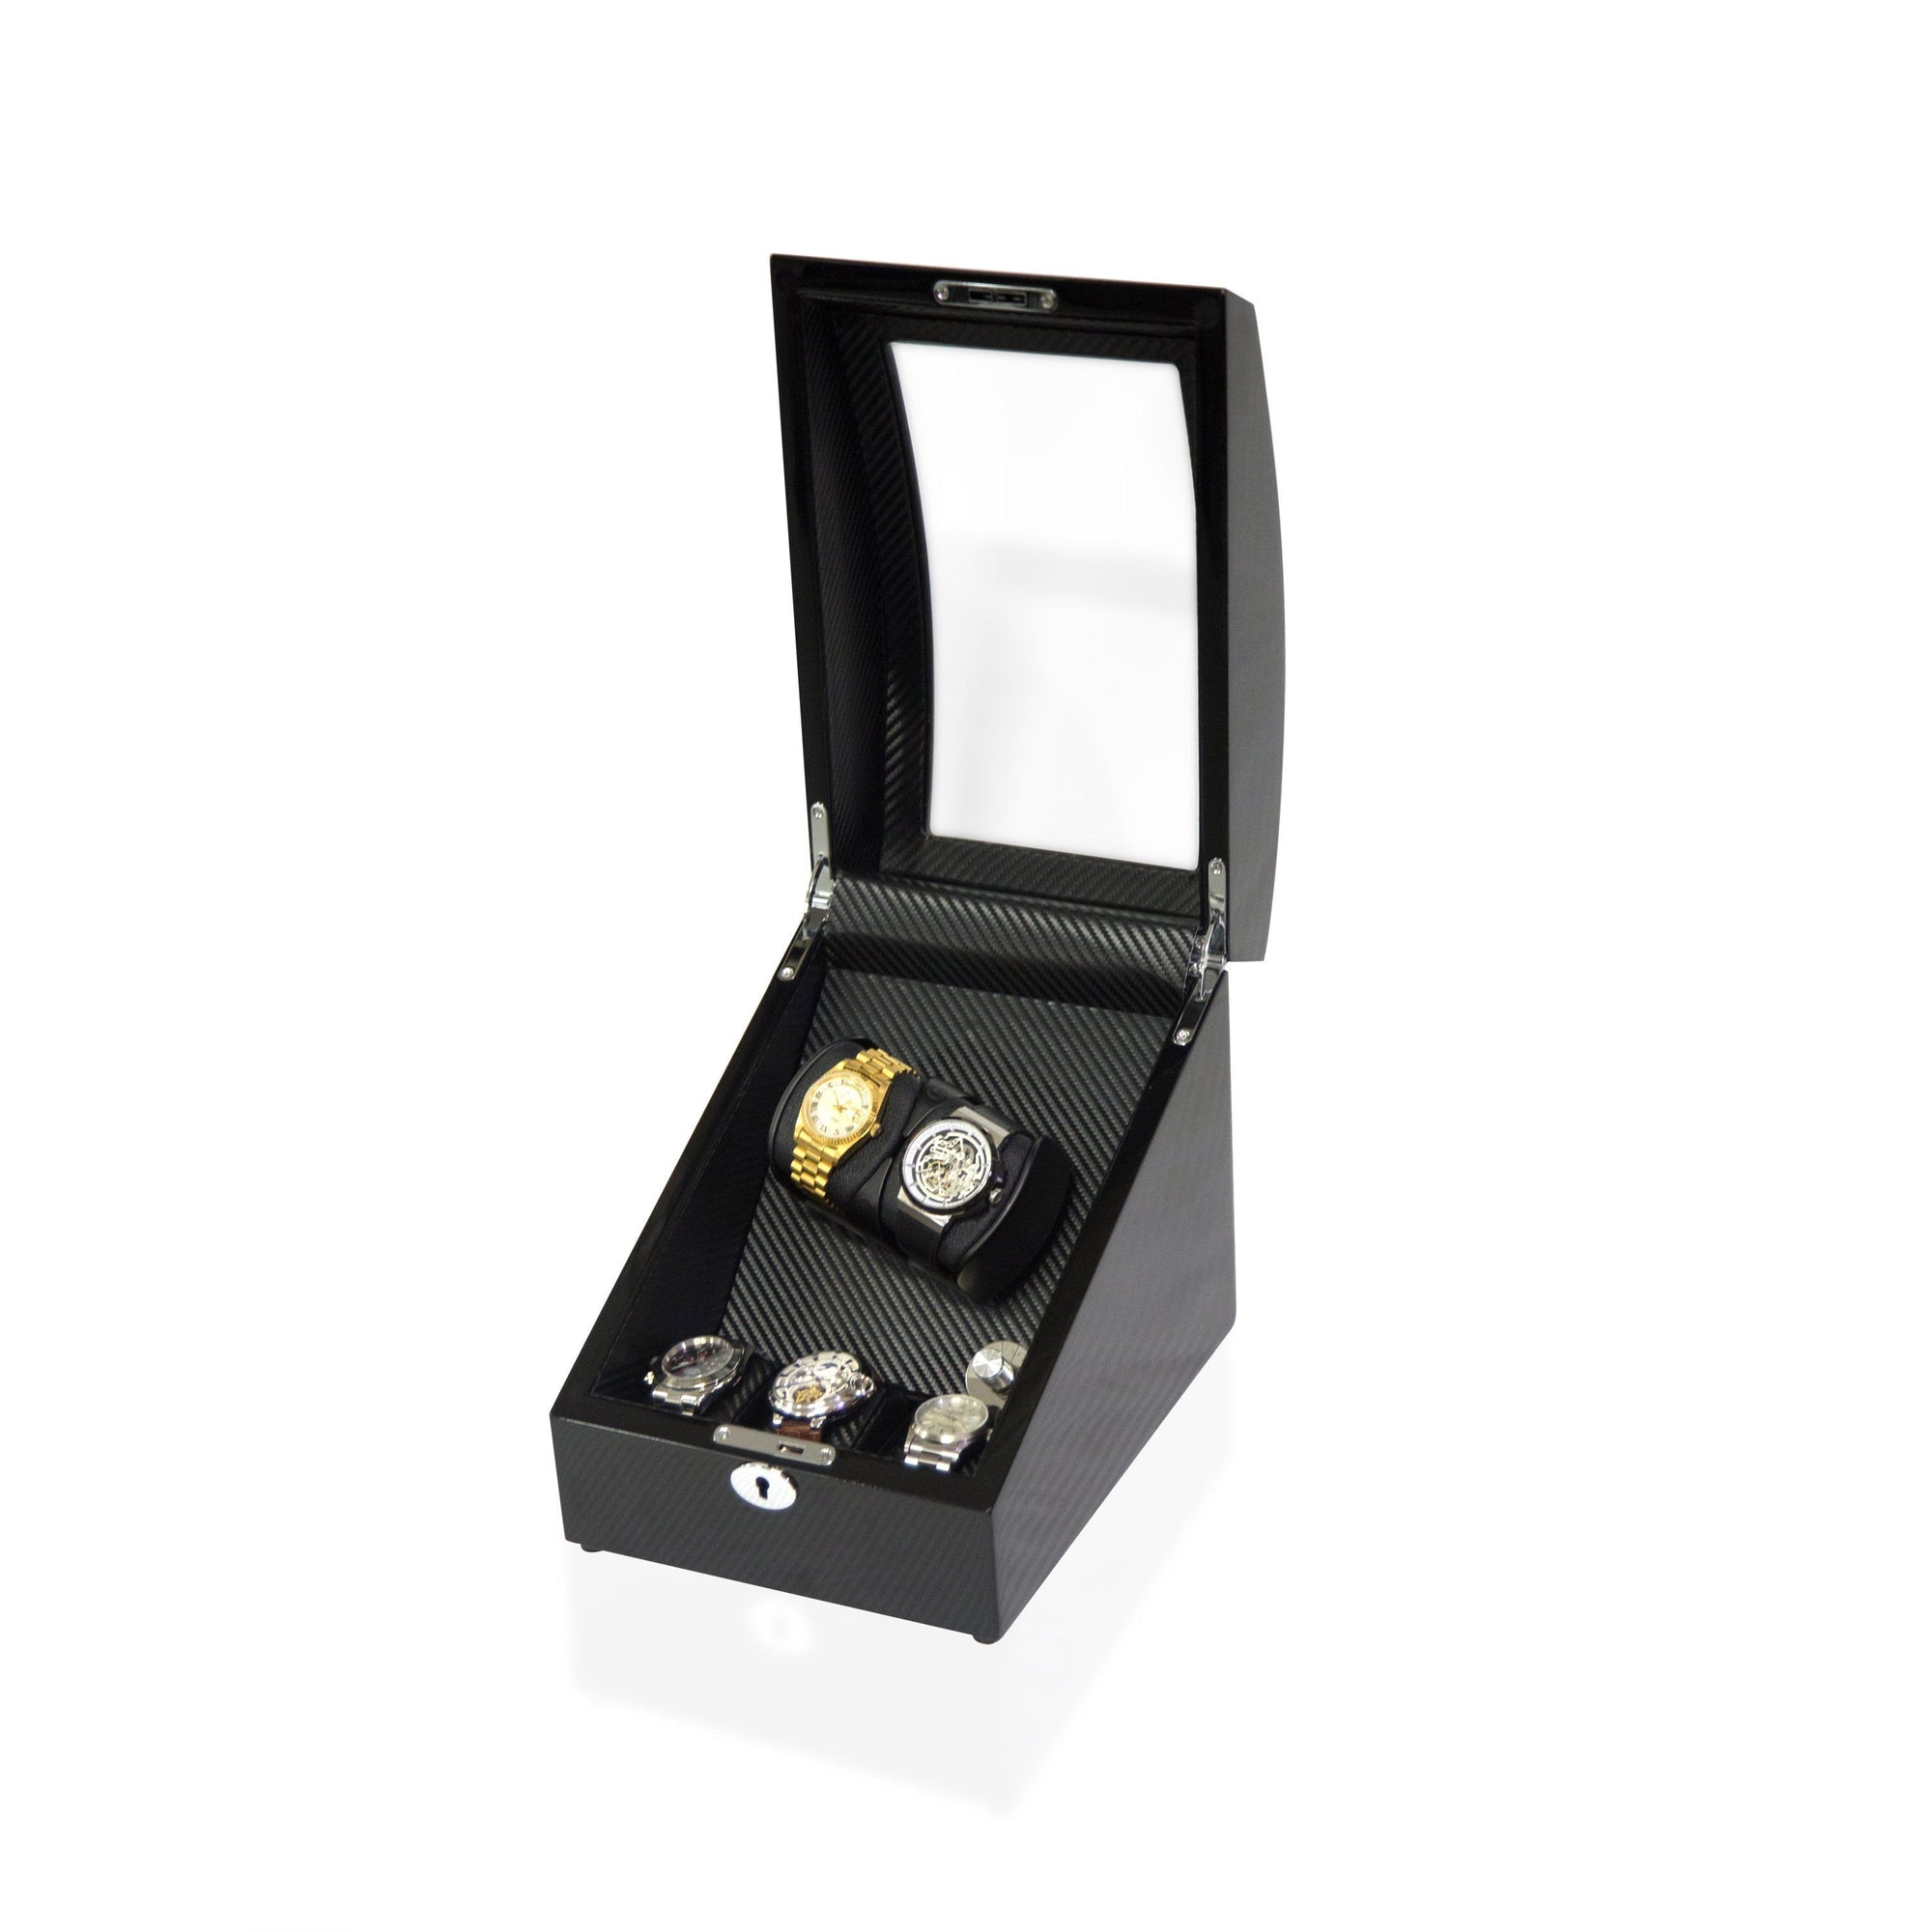 Watch Winder Box for 2+3 Watches in Black Watch Winder Boxes Clinks Australia Default